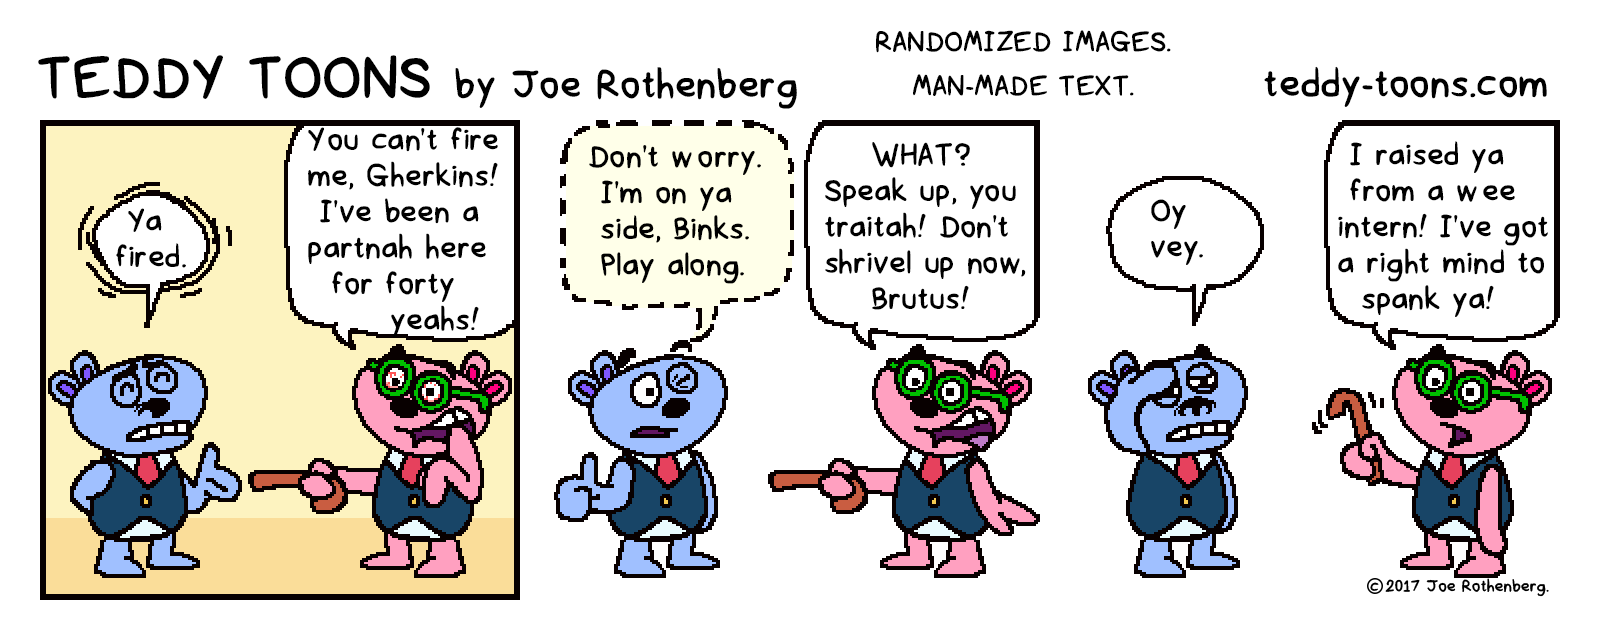 03-10-17.png